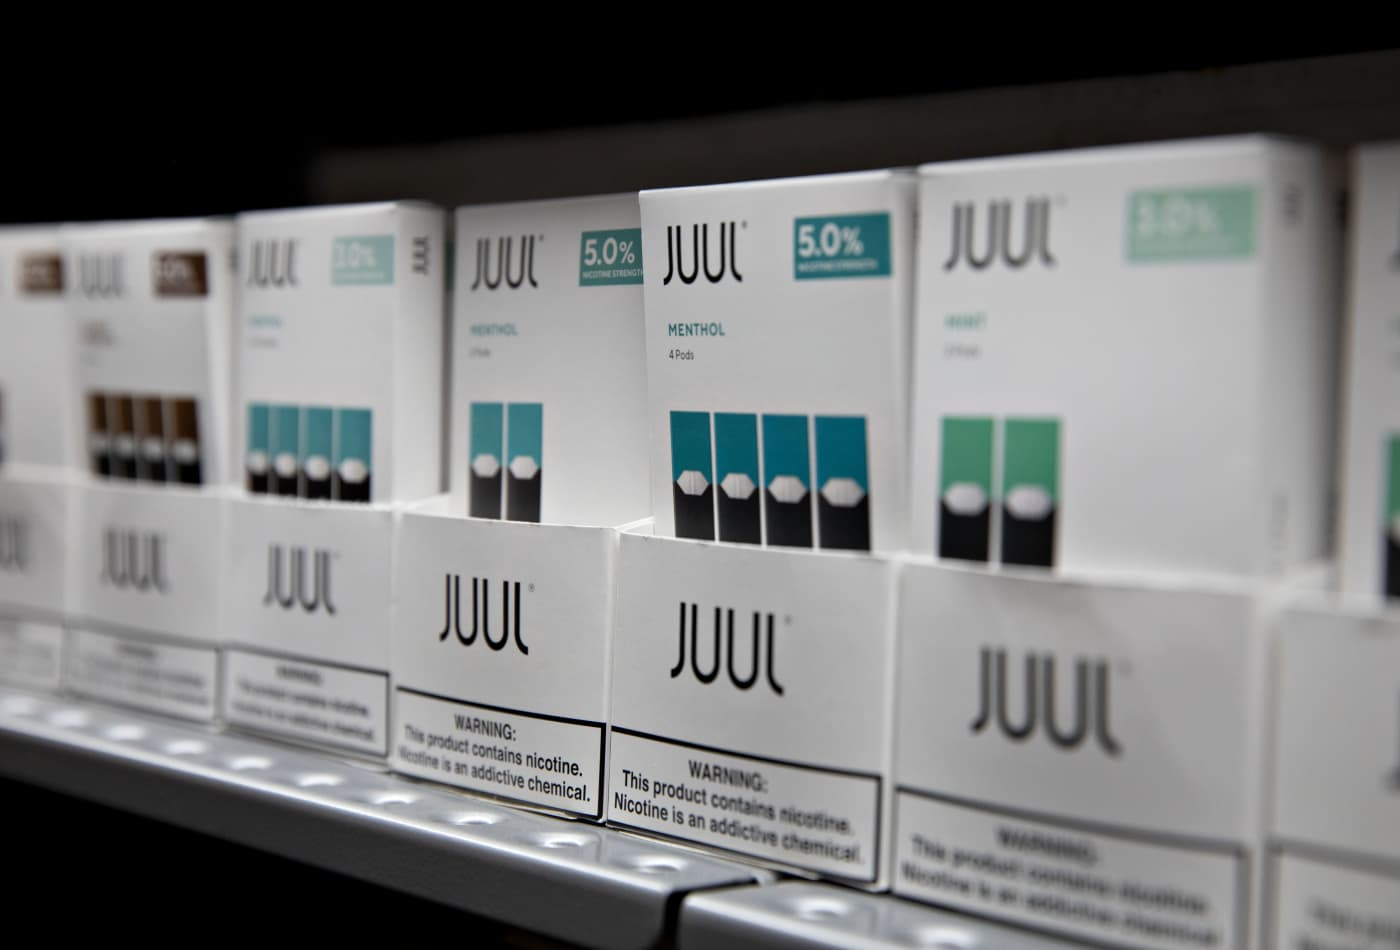 The FDA bans most fruit- and mint-flavored nicotine vaping products to curb teen use